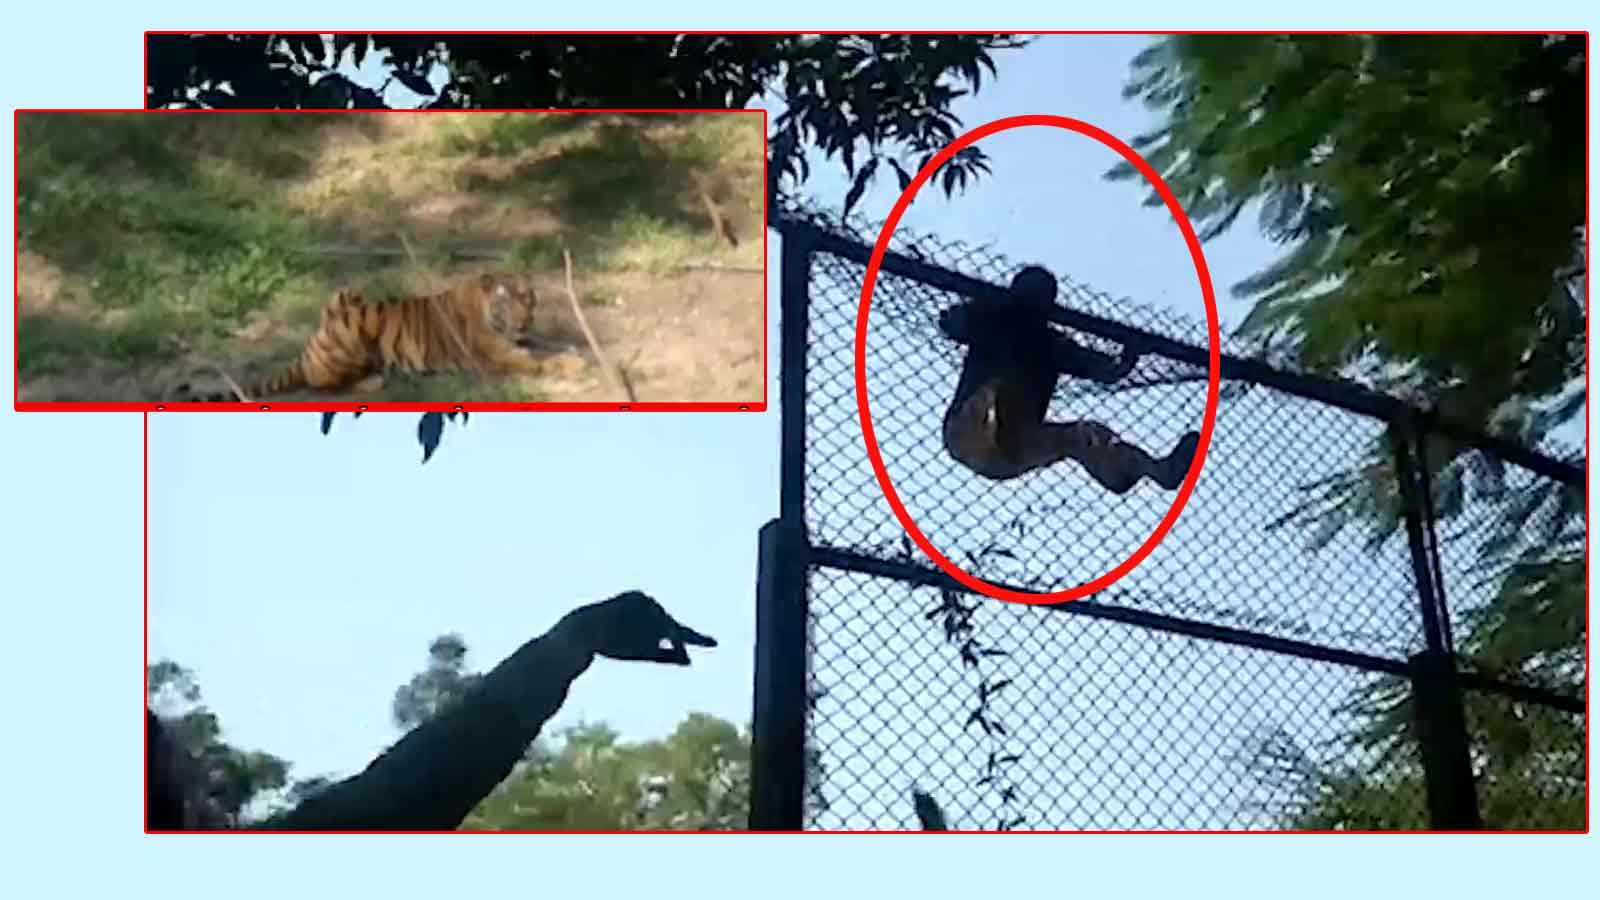 mp-drunk-man-tries-to-jump-into-tigers-enclosure-in-indore